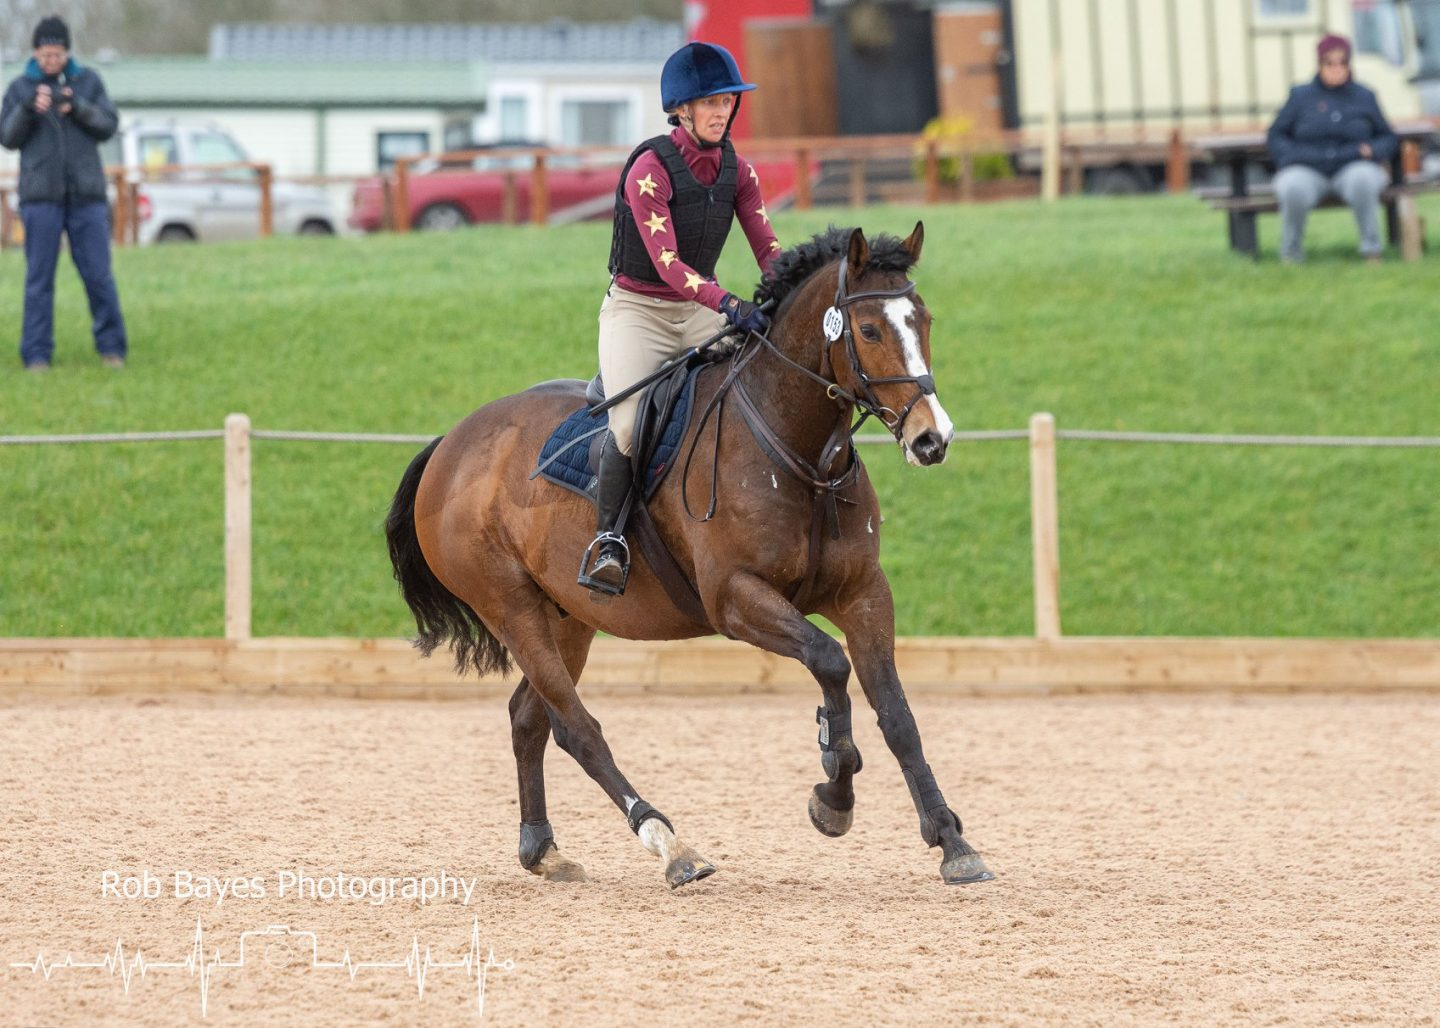 Leo competing at Chard Express Eventing. Photo by Rob Bayes Photography